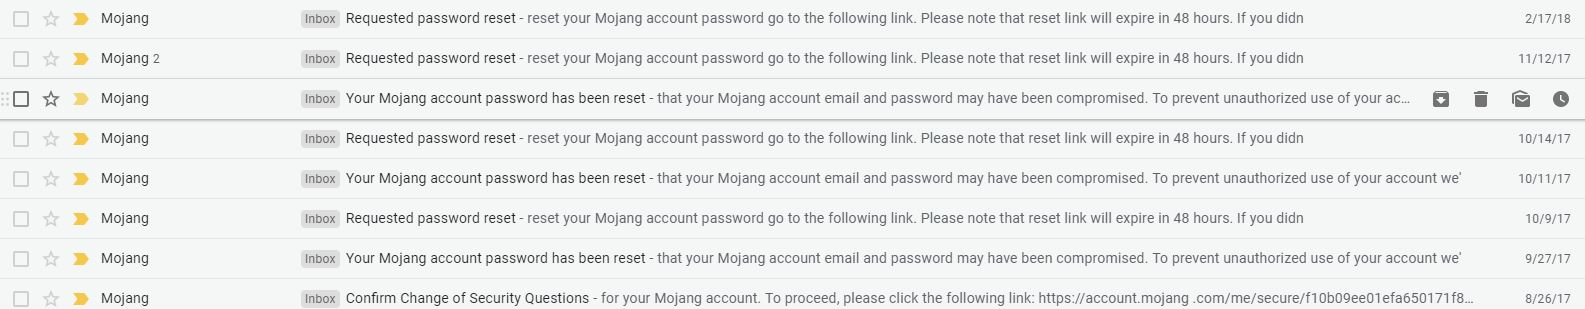 Mojang email and password